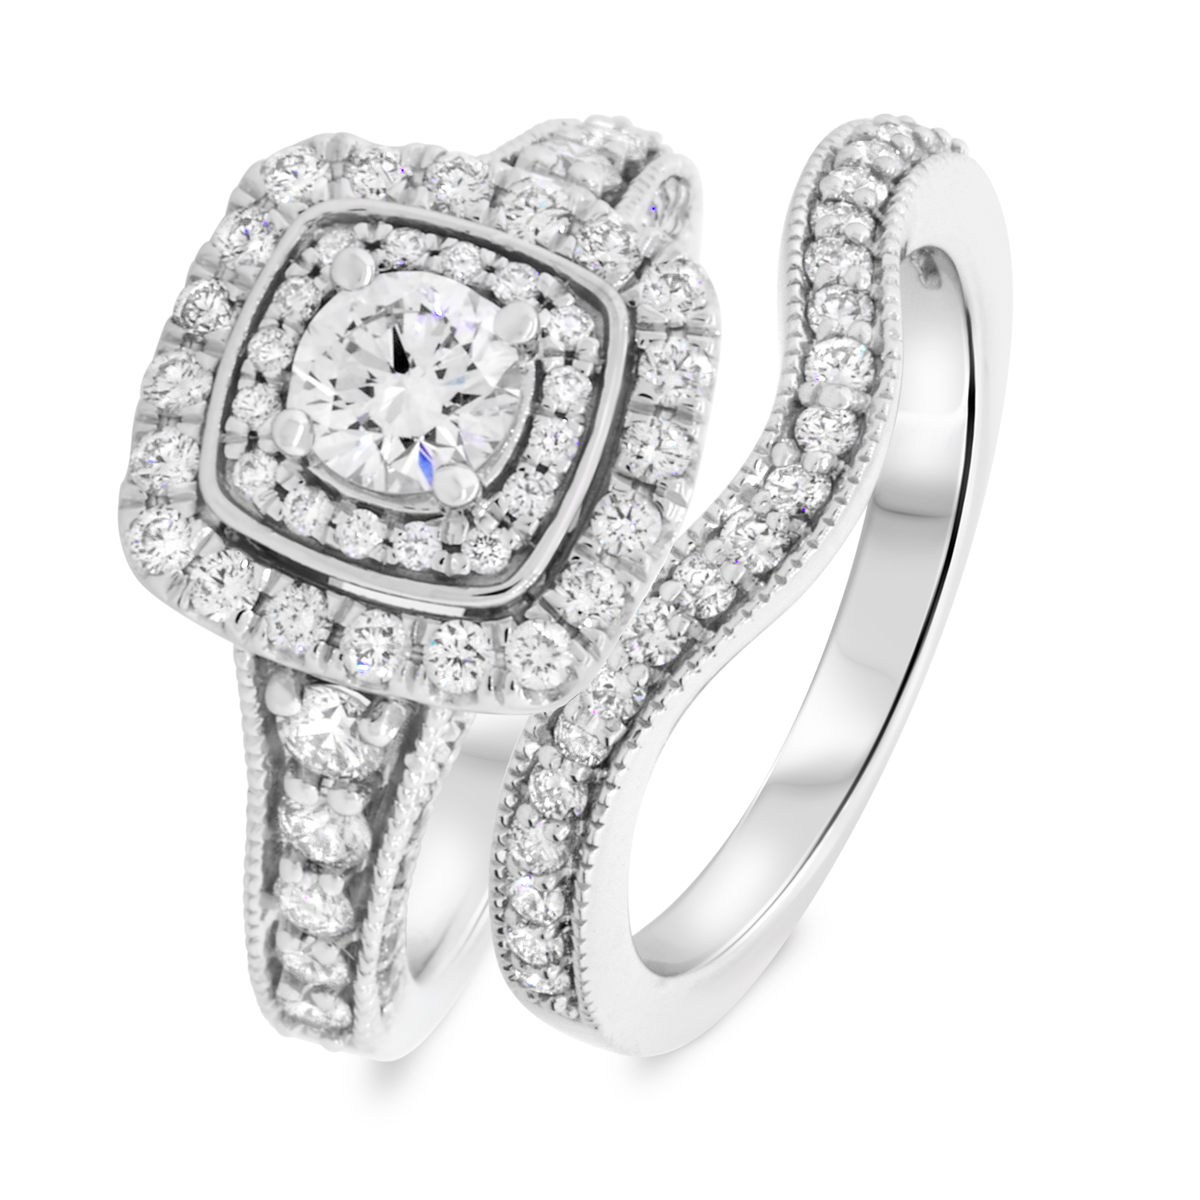 1 2/3 CT. T.W. Round Cut Diamond Ladies Bridal Wedding Ring Set 14K White Gold